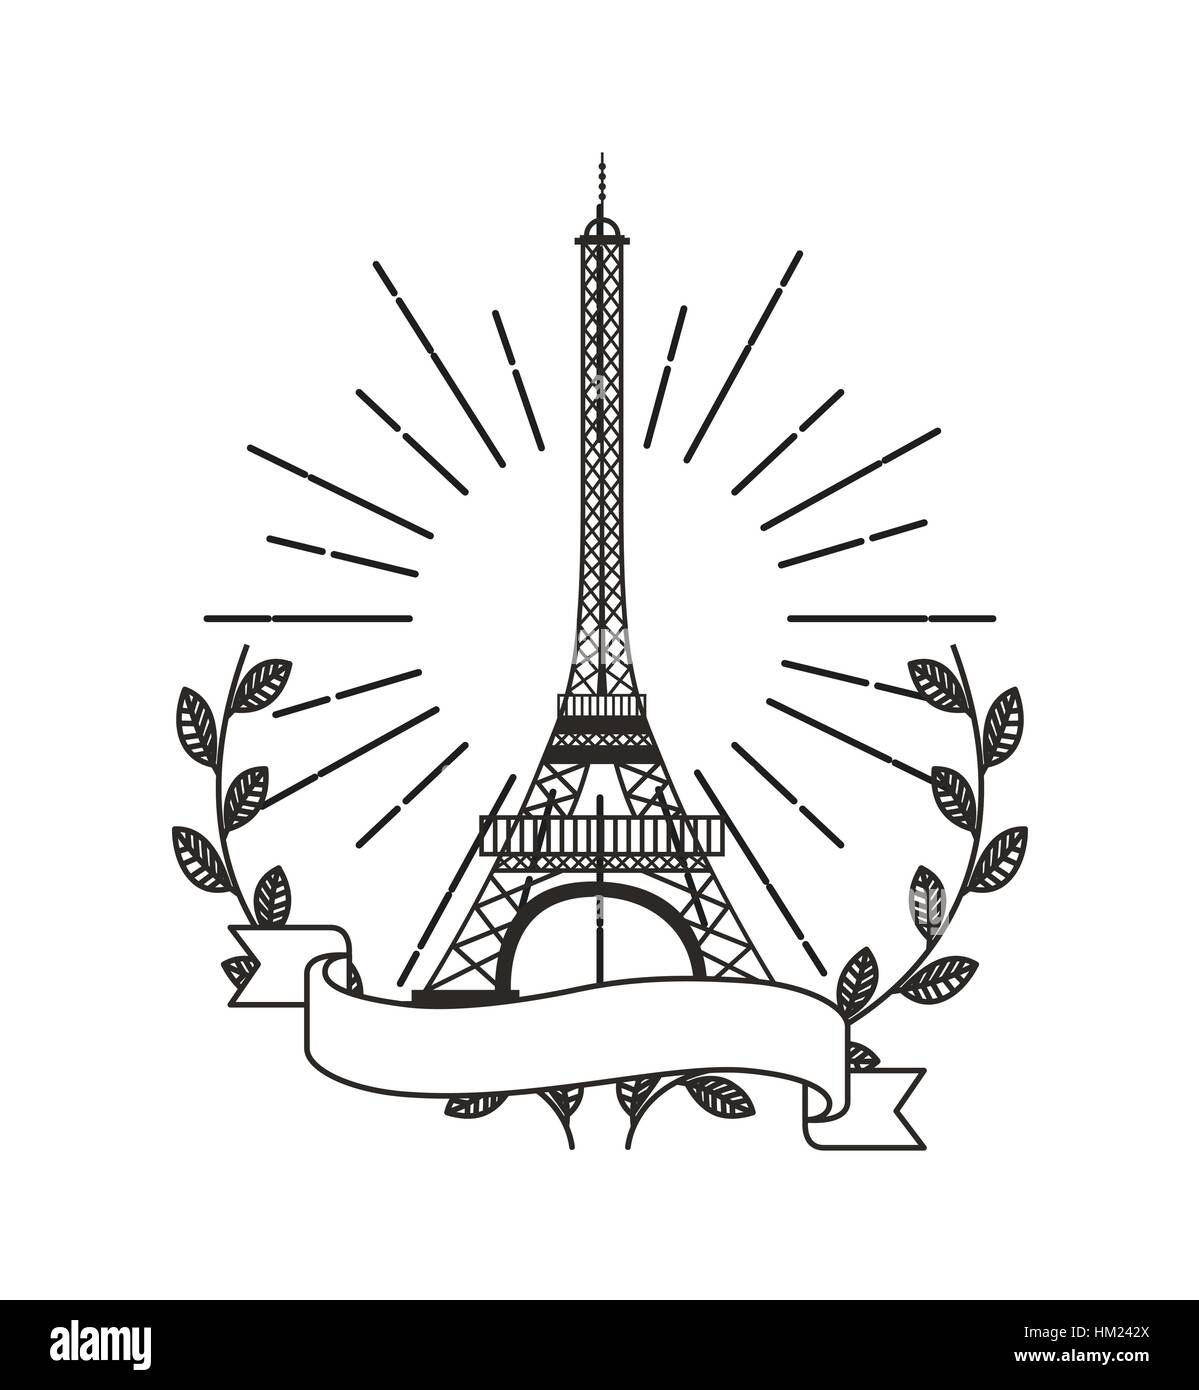 eiffel tower icon with decorative wreath of leaves and ribbon over white background. vector illustration - Stock Vector